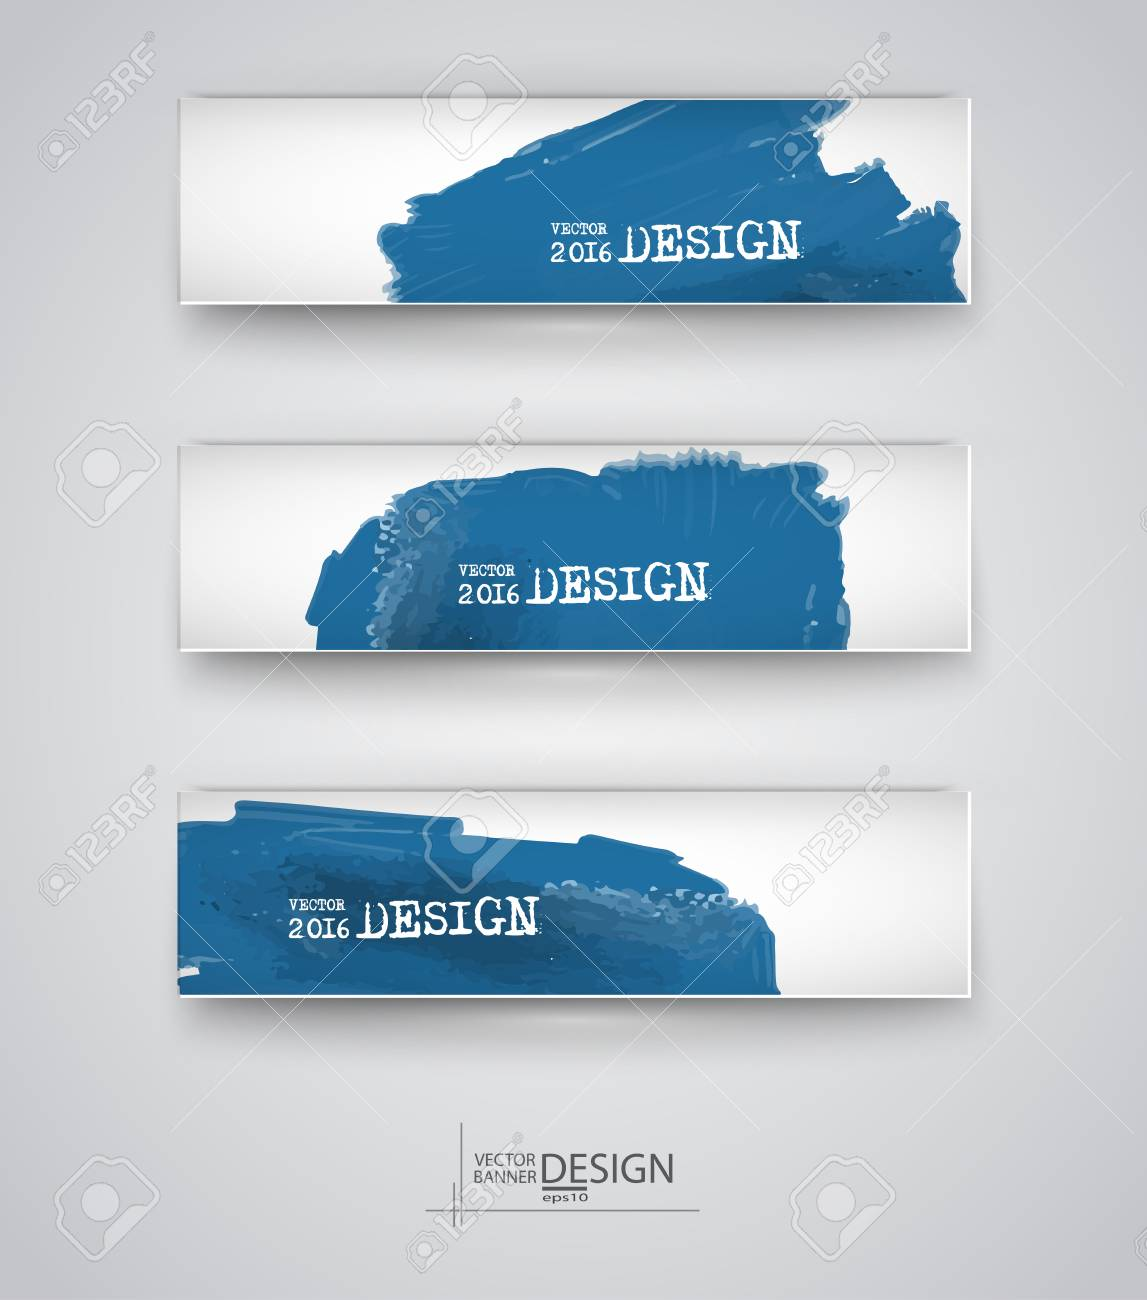 Business design templates set of banners with colored backgrounds business design templates set of banners with colored backgrounds paint abstract modern decoration cheaphphosting Image collections